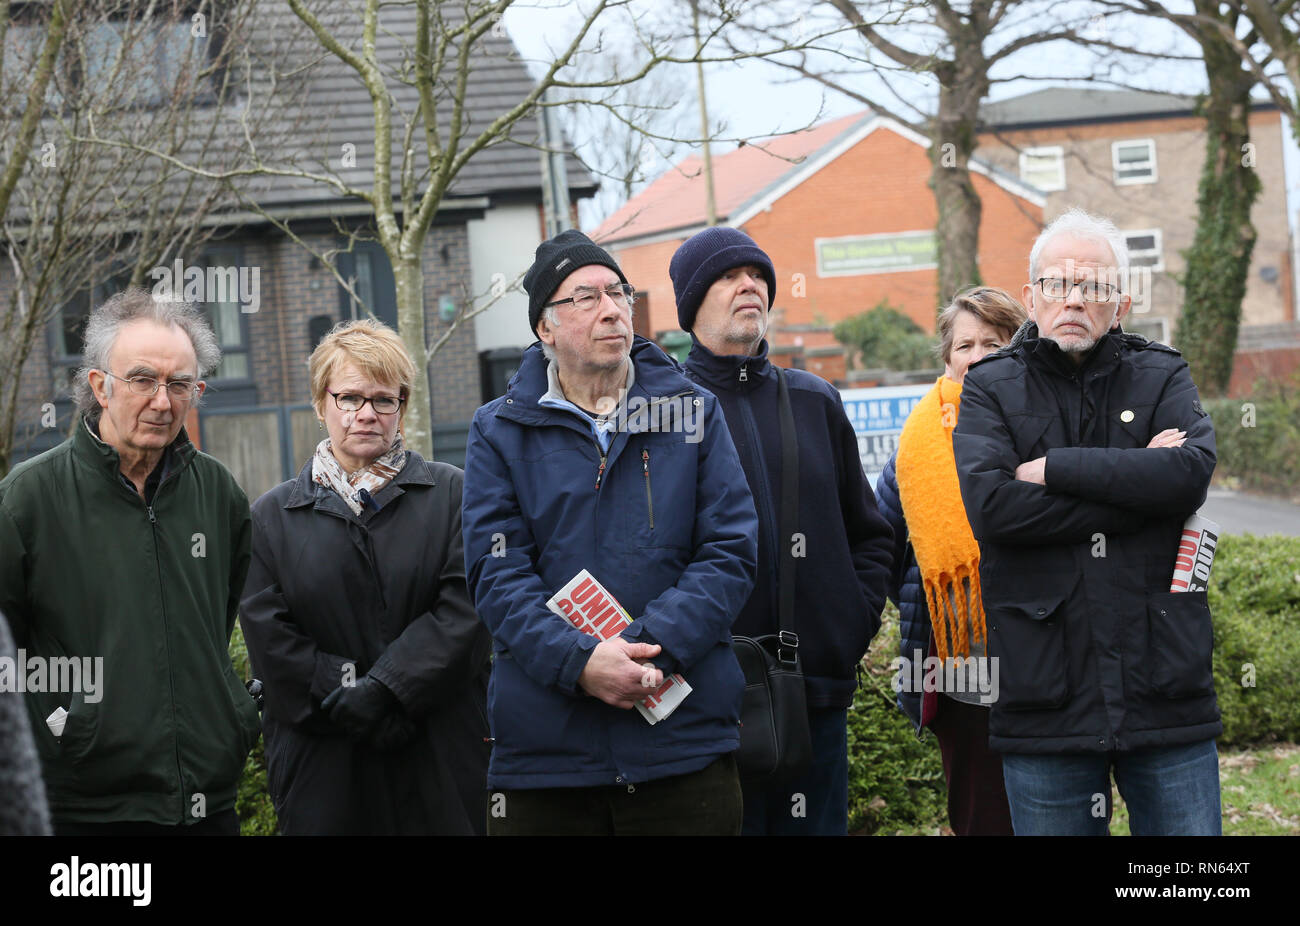 Whitefield, UK. 17th Feb, 2019. A vigil is held after an attack on Phillips Park Jewish cemetery which Police are treating as hate crime, Whitefield, Greater Manchester, UK, 17th February 2019 (C)Barbara Cook/Alamy Live News Credit: Barbara Cook/Alamy Live News - Stock Image